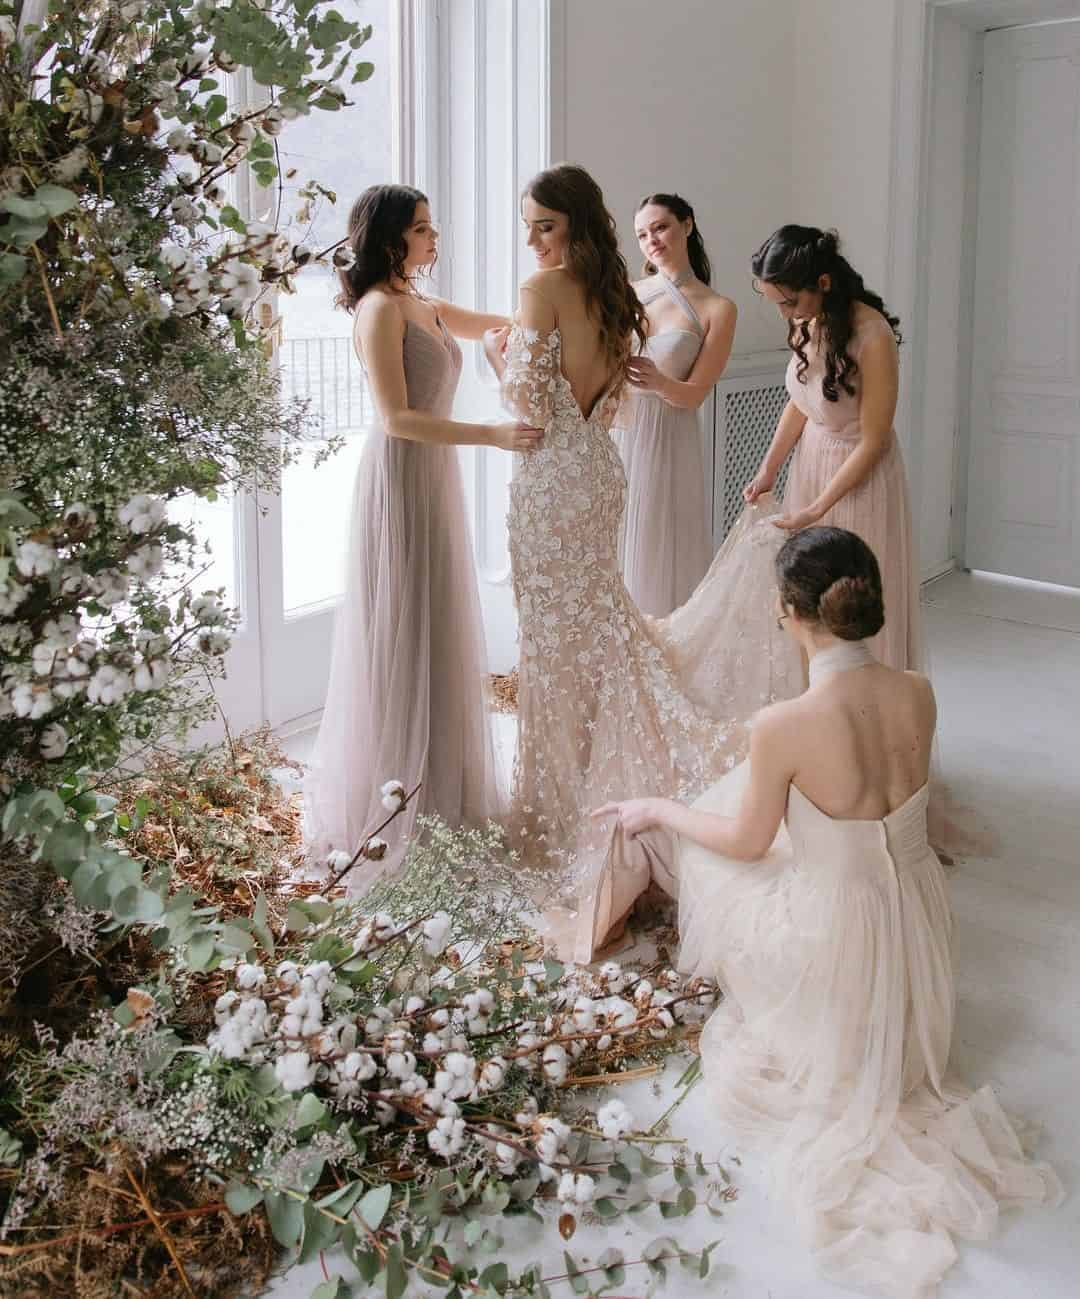 the bridesmaids help the bride with wedding dress